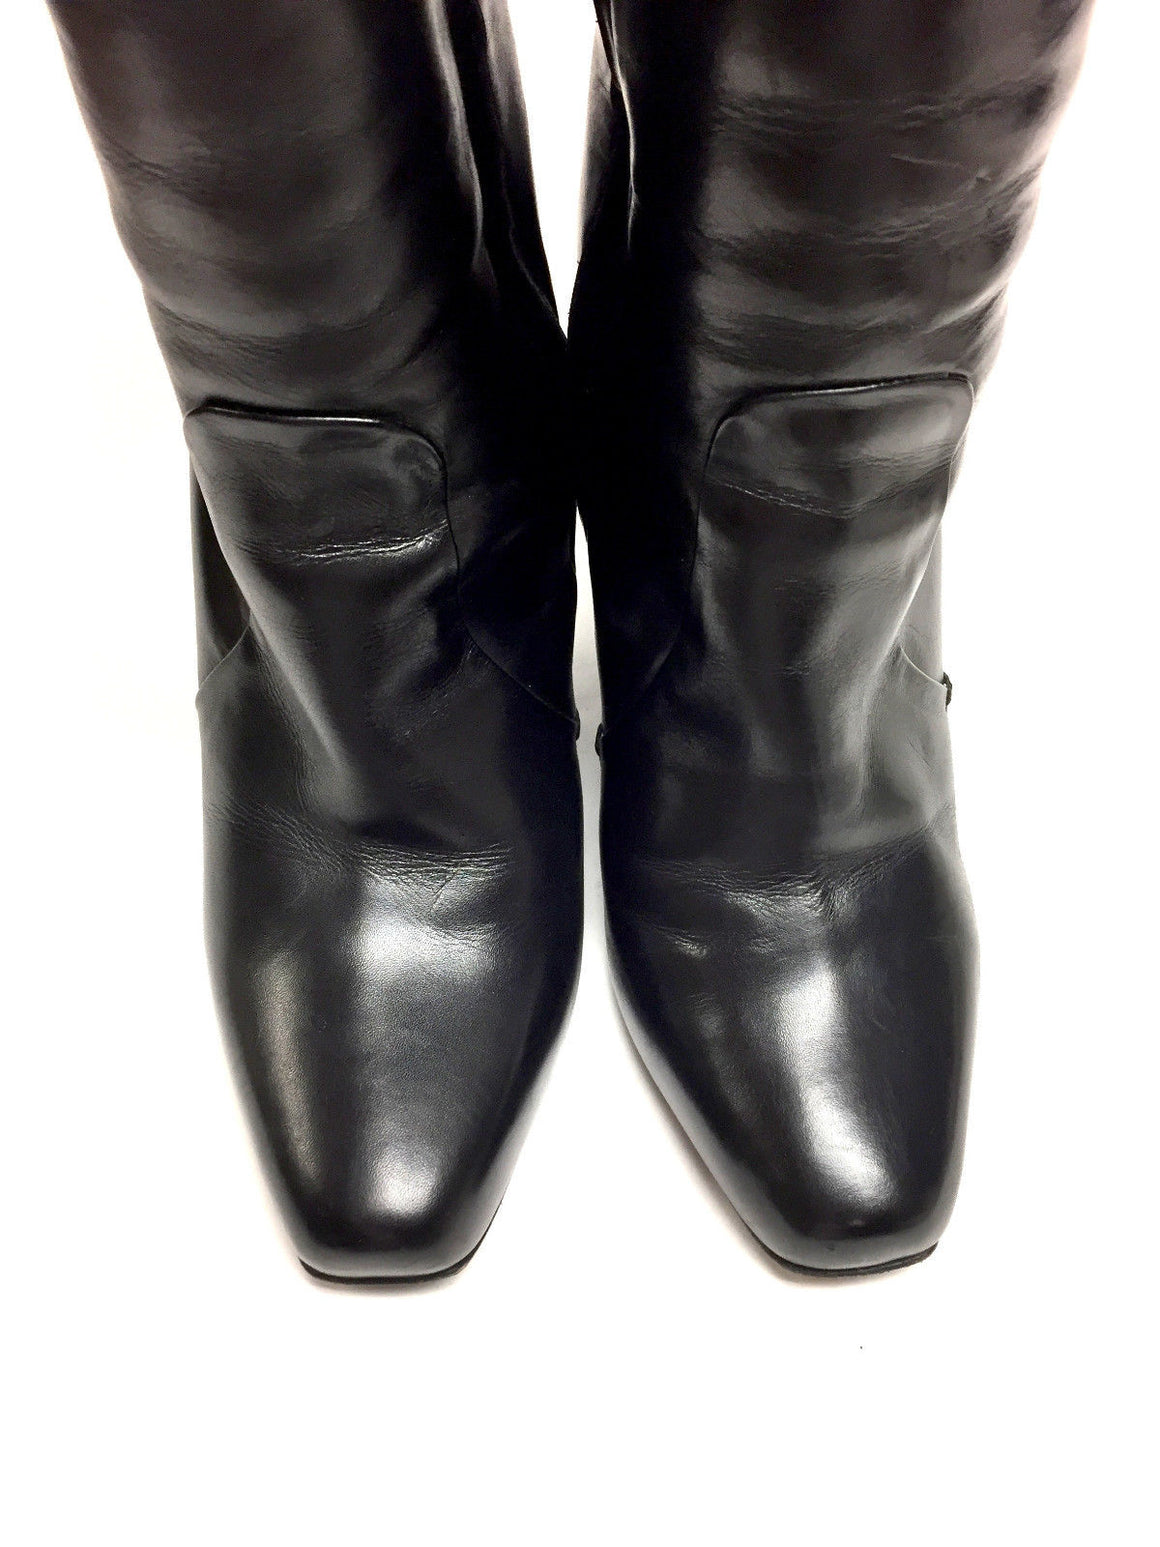 bisbiz.com CALVIN KLEIN COLLECTION Black Leather Patent Leather Wedge Heels Tall Boots Size: 36/6 - Bis Luxury Resale